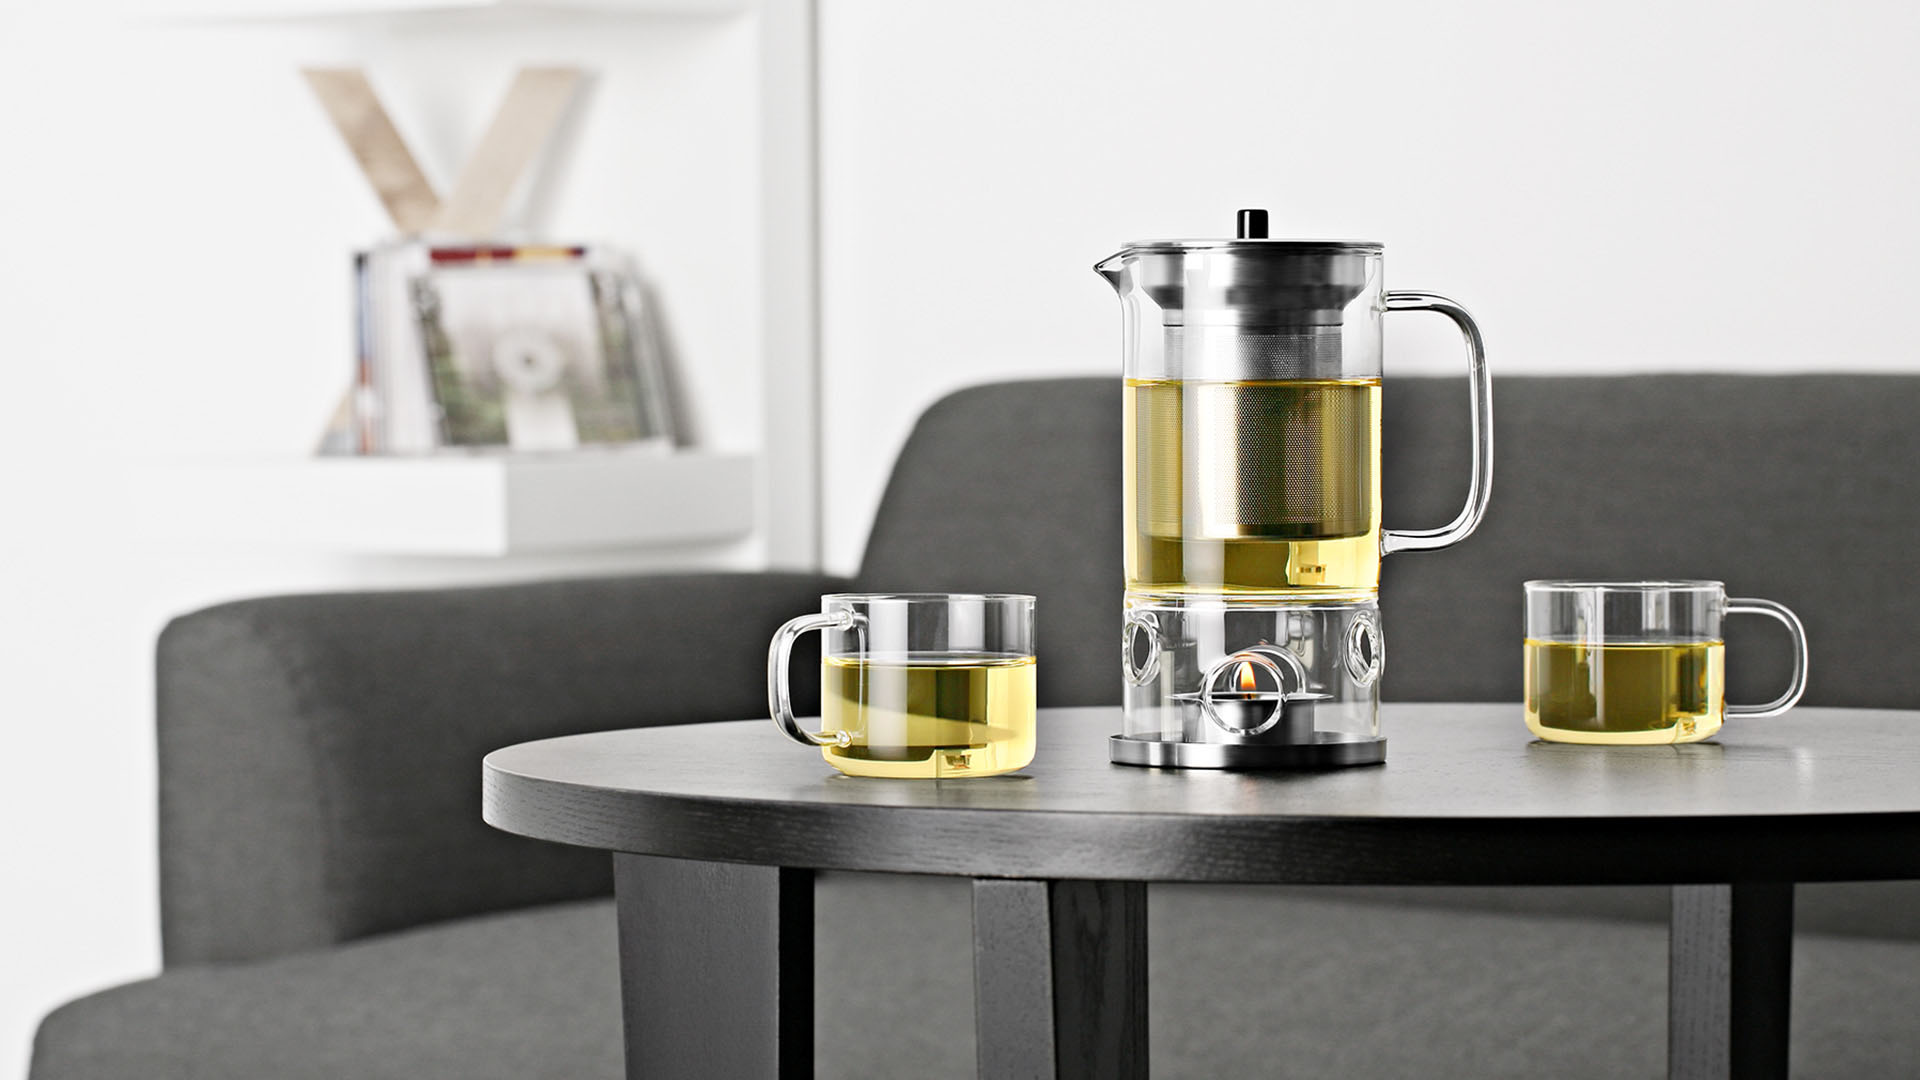 Glass teaware deals! 10% OFF This Week